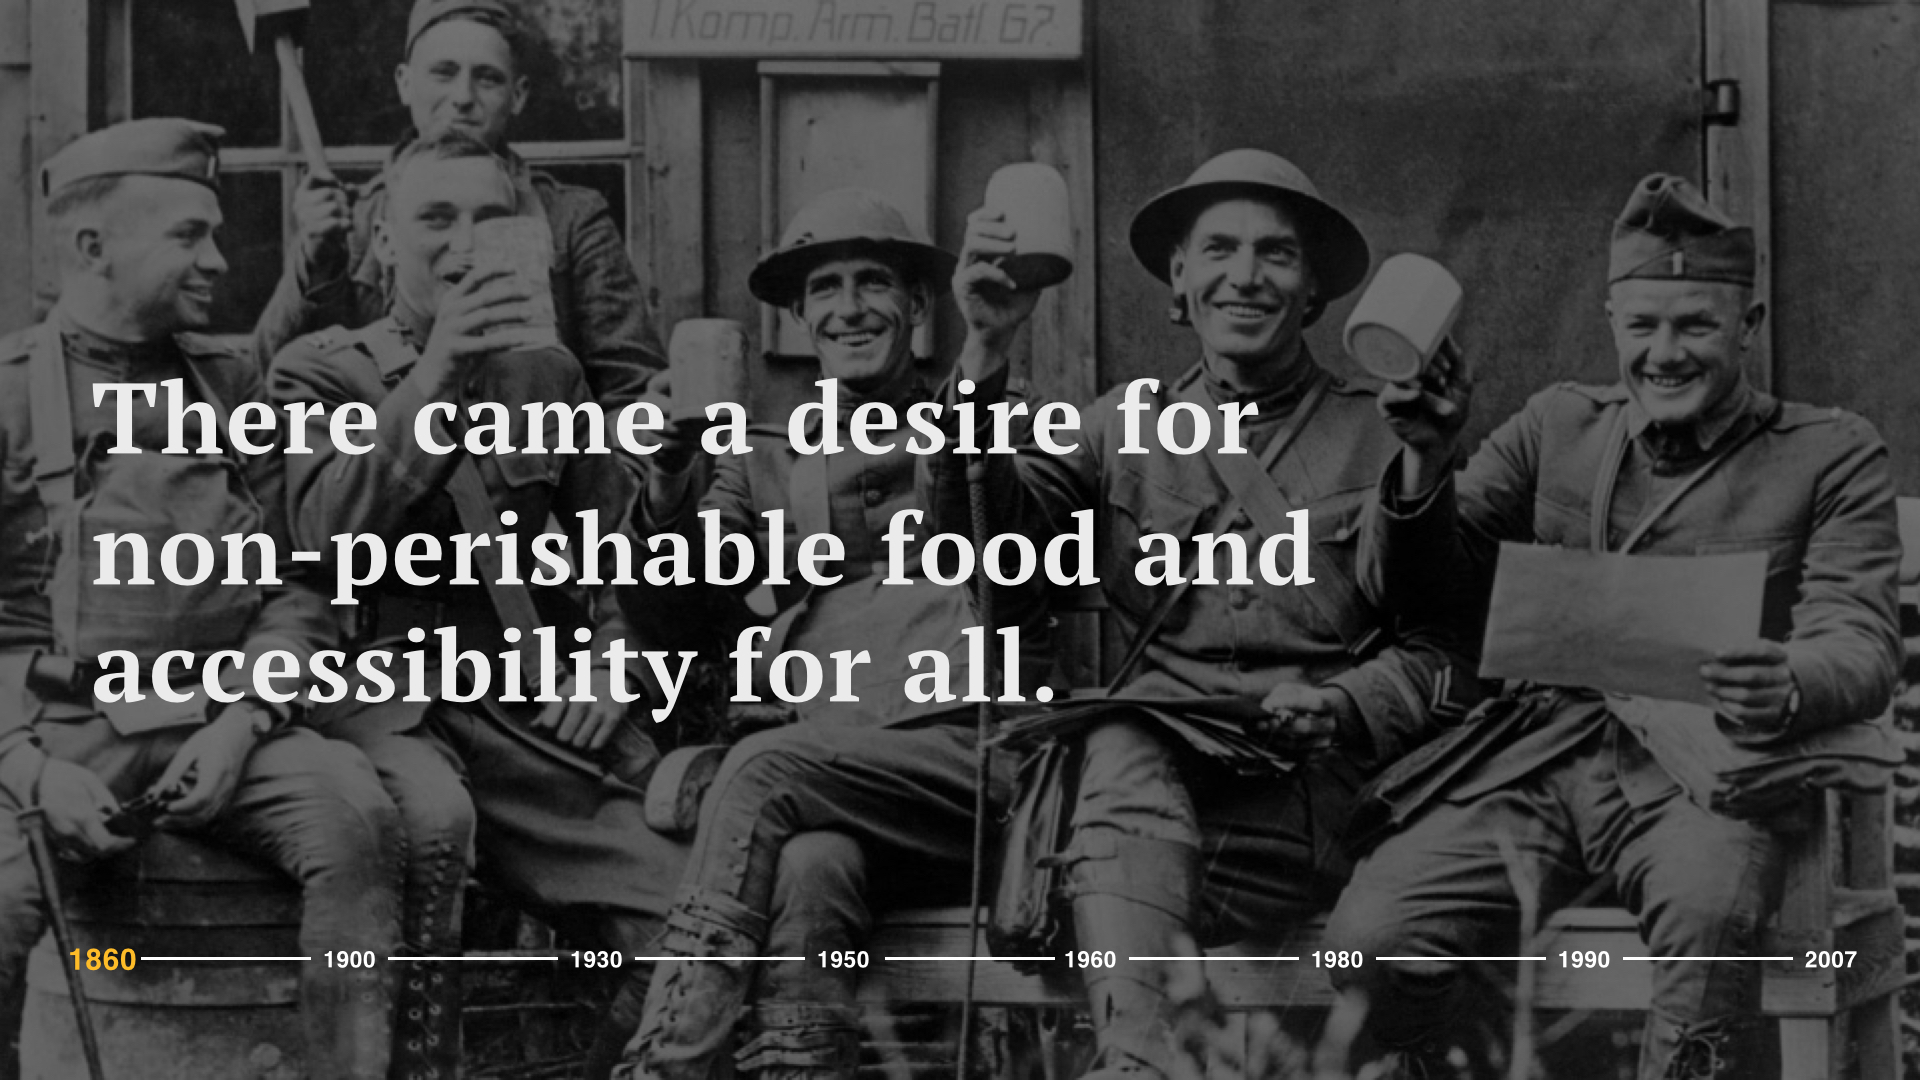 Around the same time, the American government was on the hunt for food options to serve the soldiers in World War I.  There came a desire for non-perishable food and accessibility for all. And with this, Americans were in demand for something different – new, innovative solutions that would come to shape the way we eat.